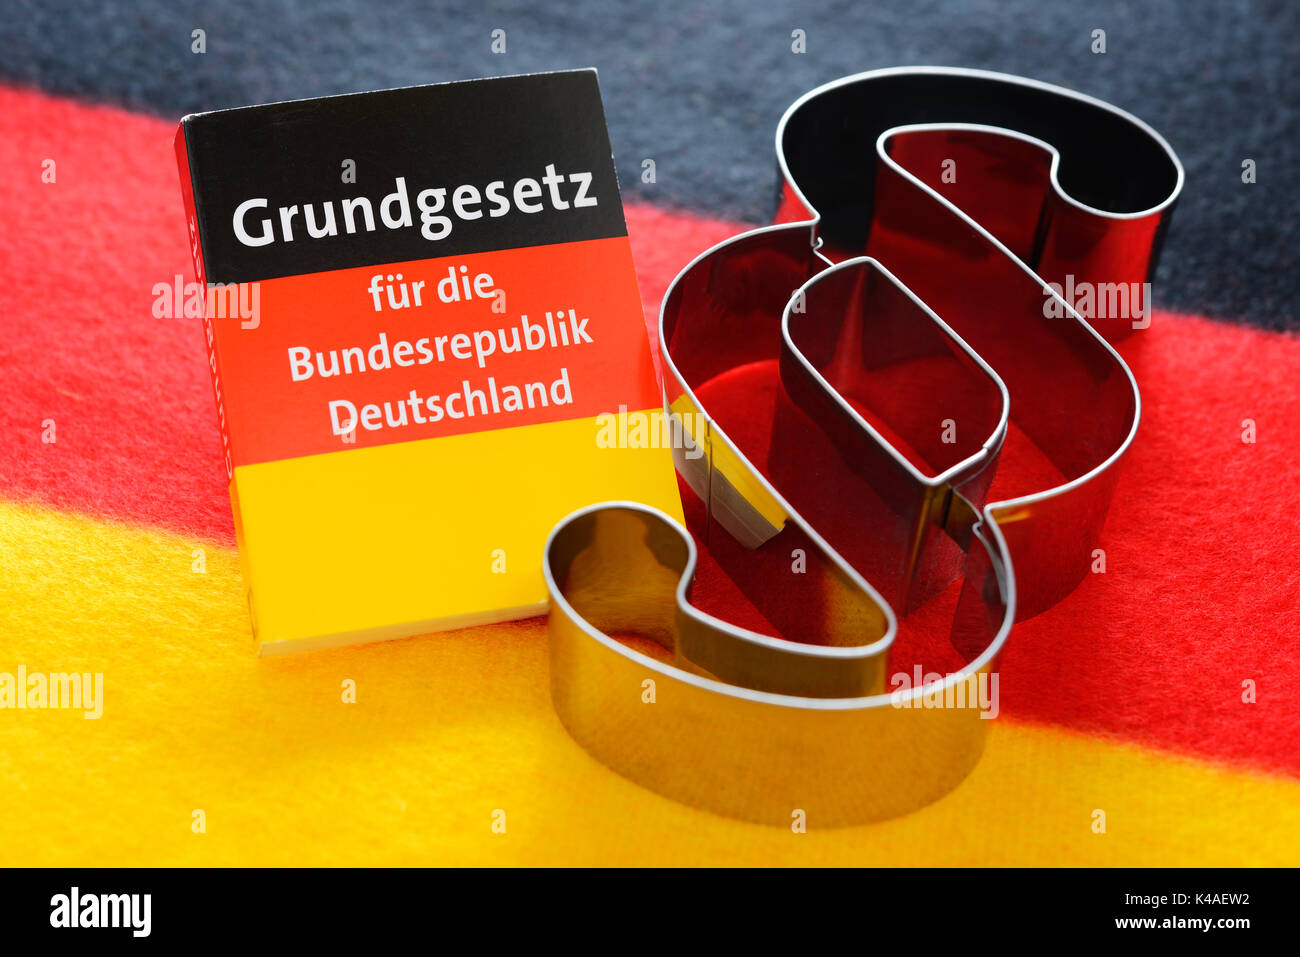 German Basic Law And Paragraph Sign Stock Photo